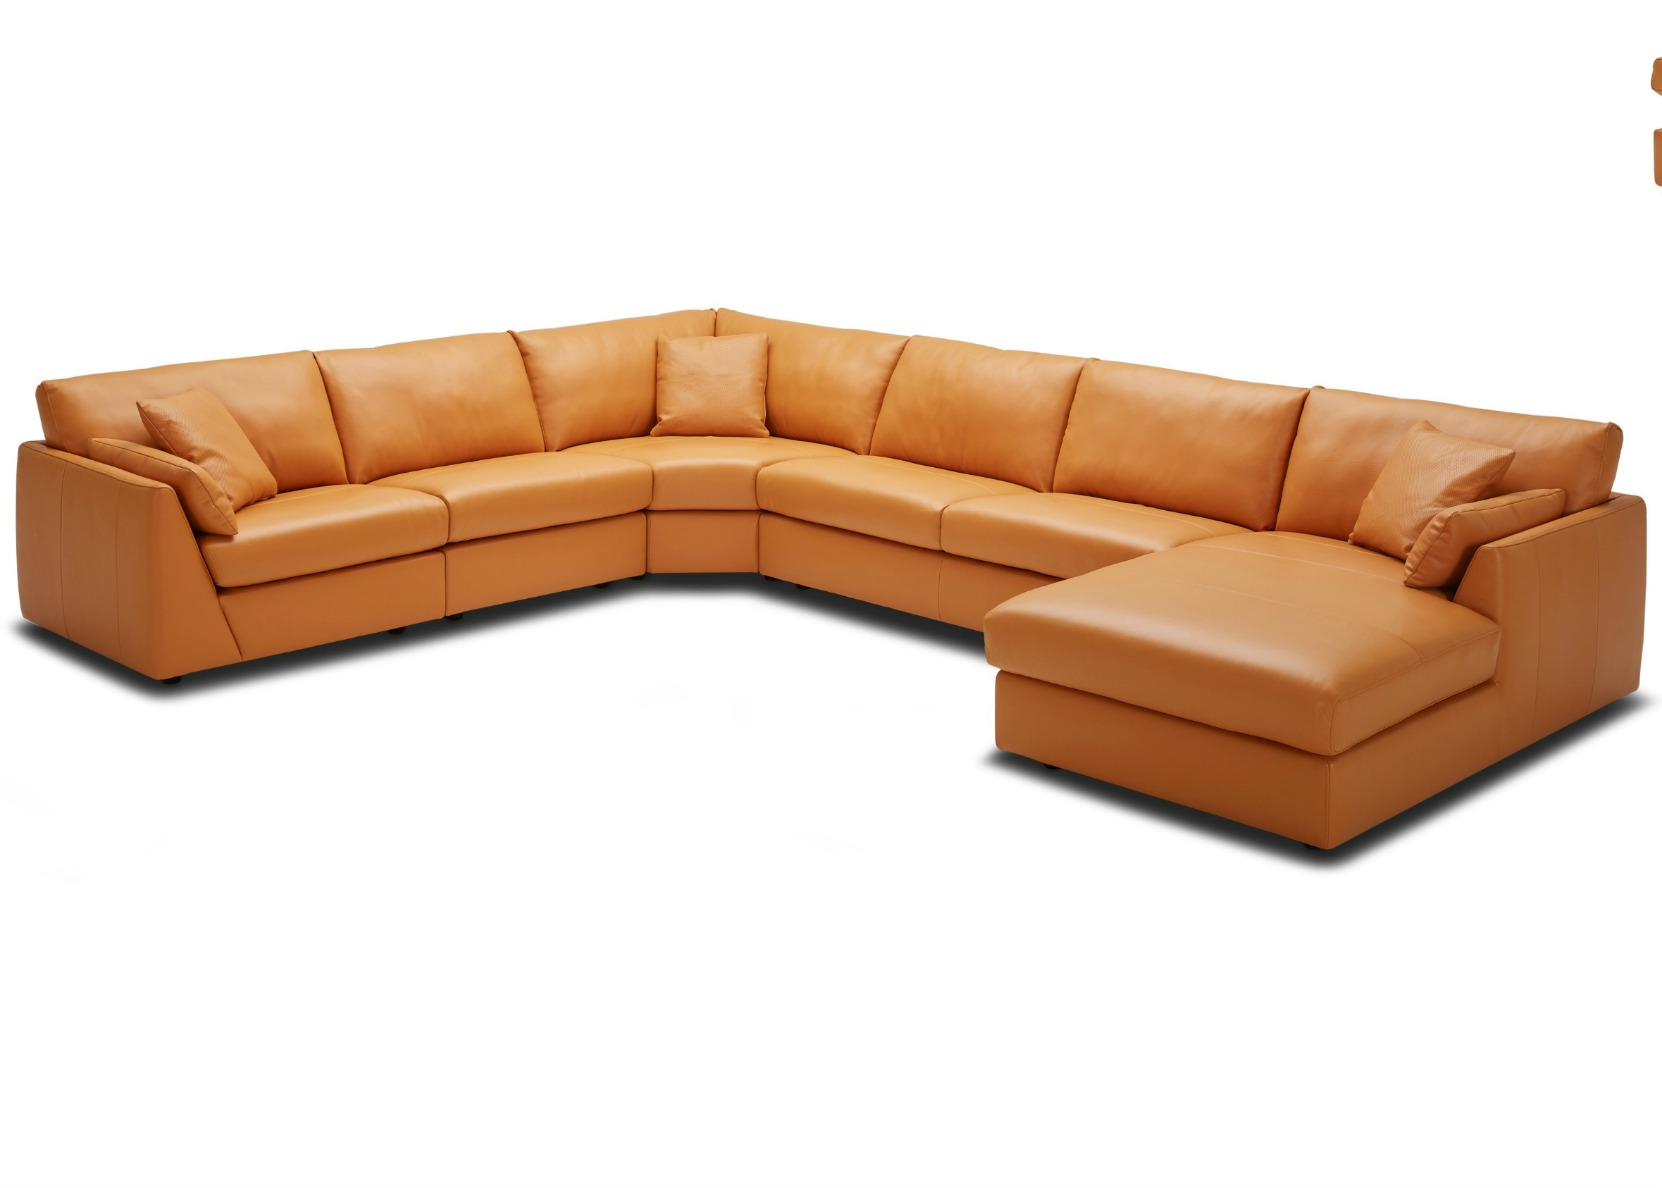 with products catalog seat en sofa two brown timsfors dark chaise cn longue ikea kimstad mjuk